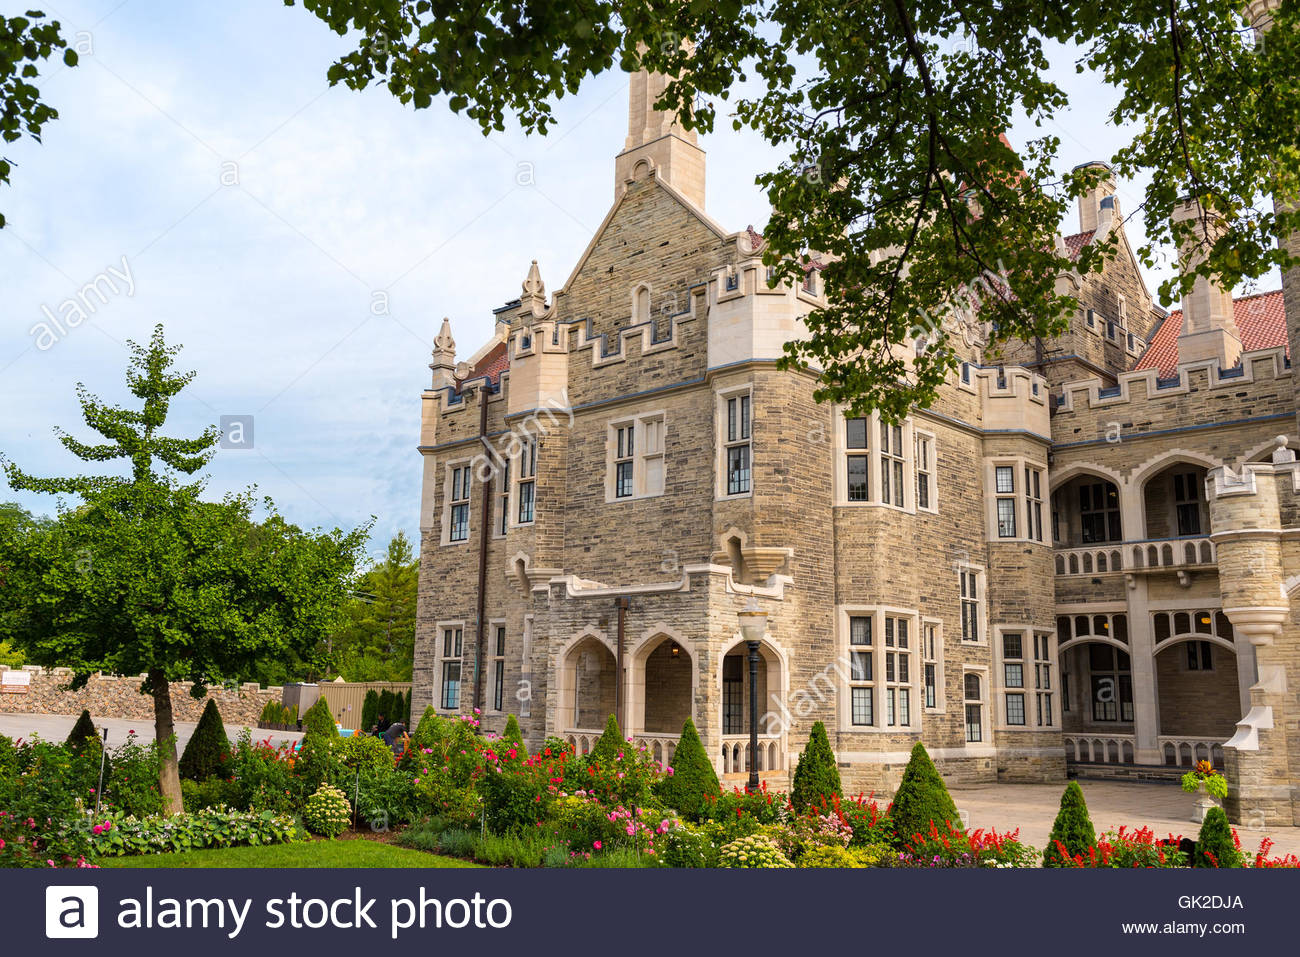 Casa loma vintage beautiful castle architecture exterior design the mansion is one of the